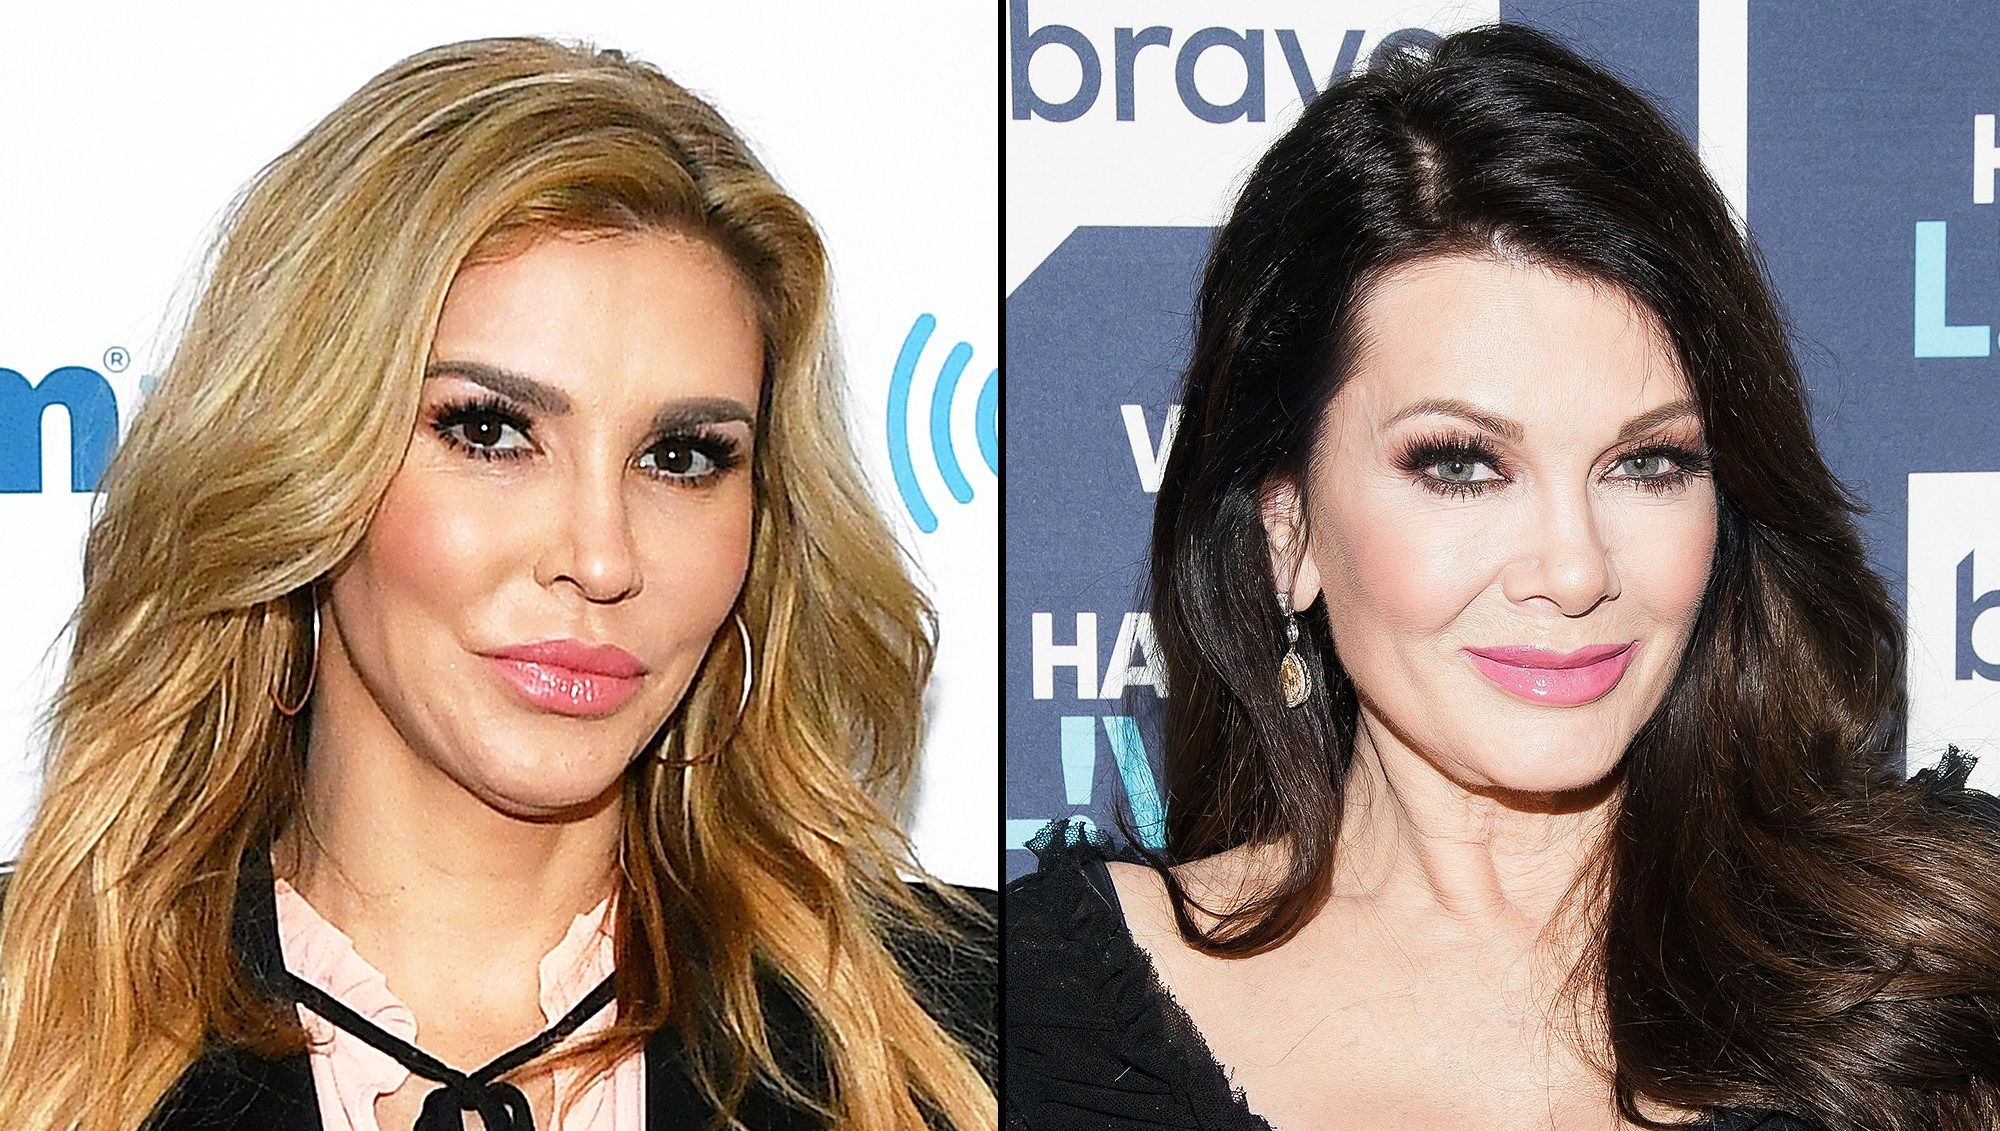 Real Housewives of Beverly Hills Season 9 Trailer Brandi Glanville Return Lisa Vanderpump Drama